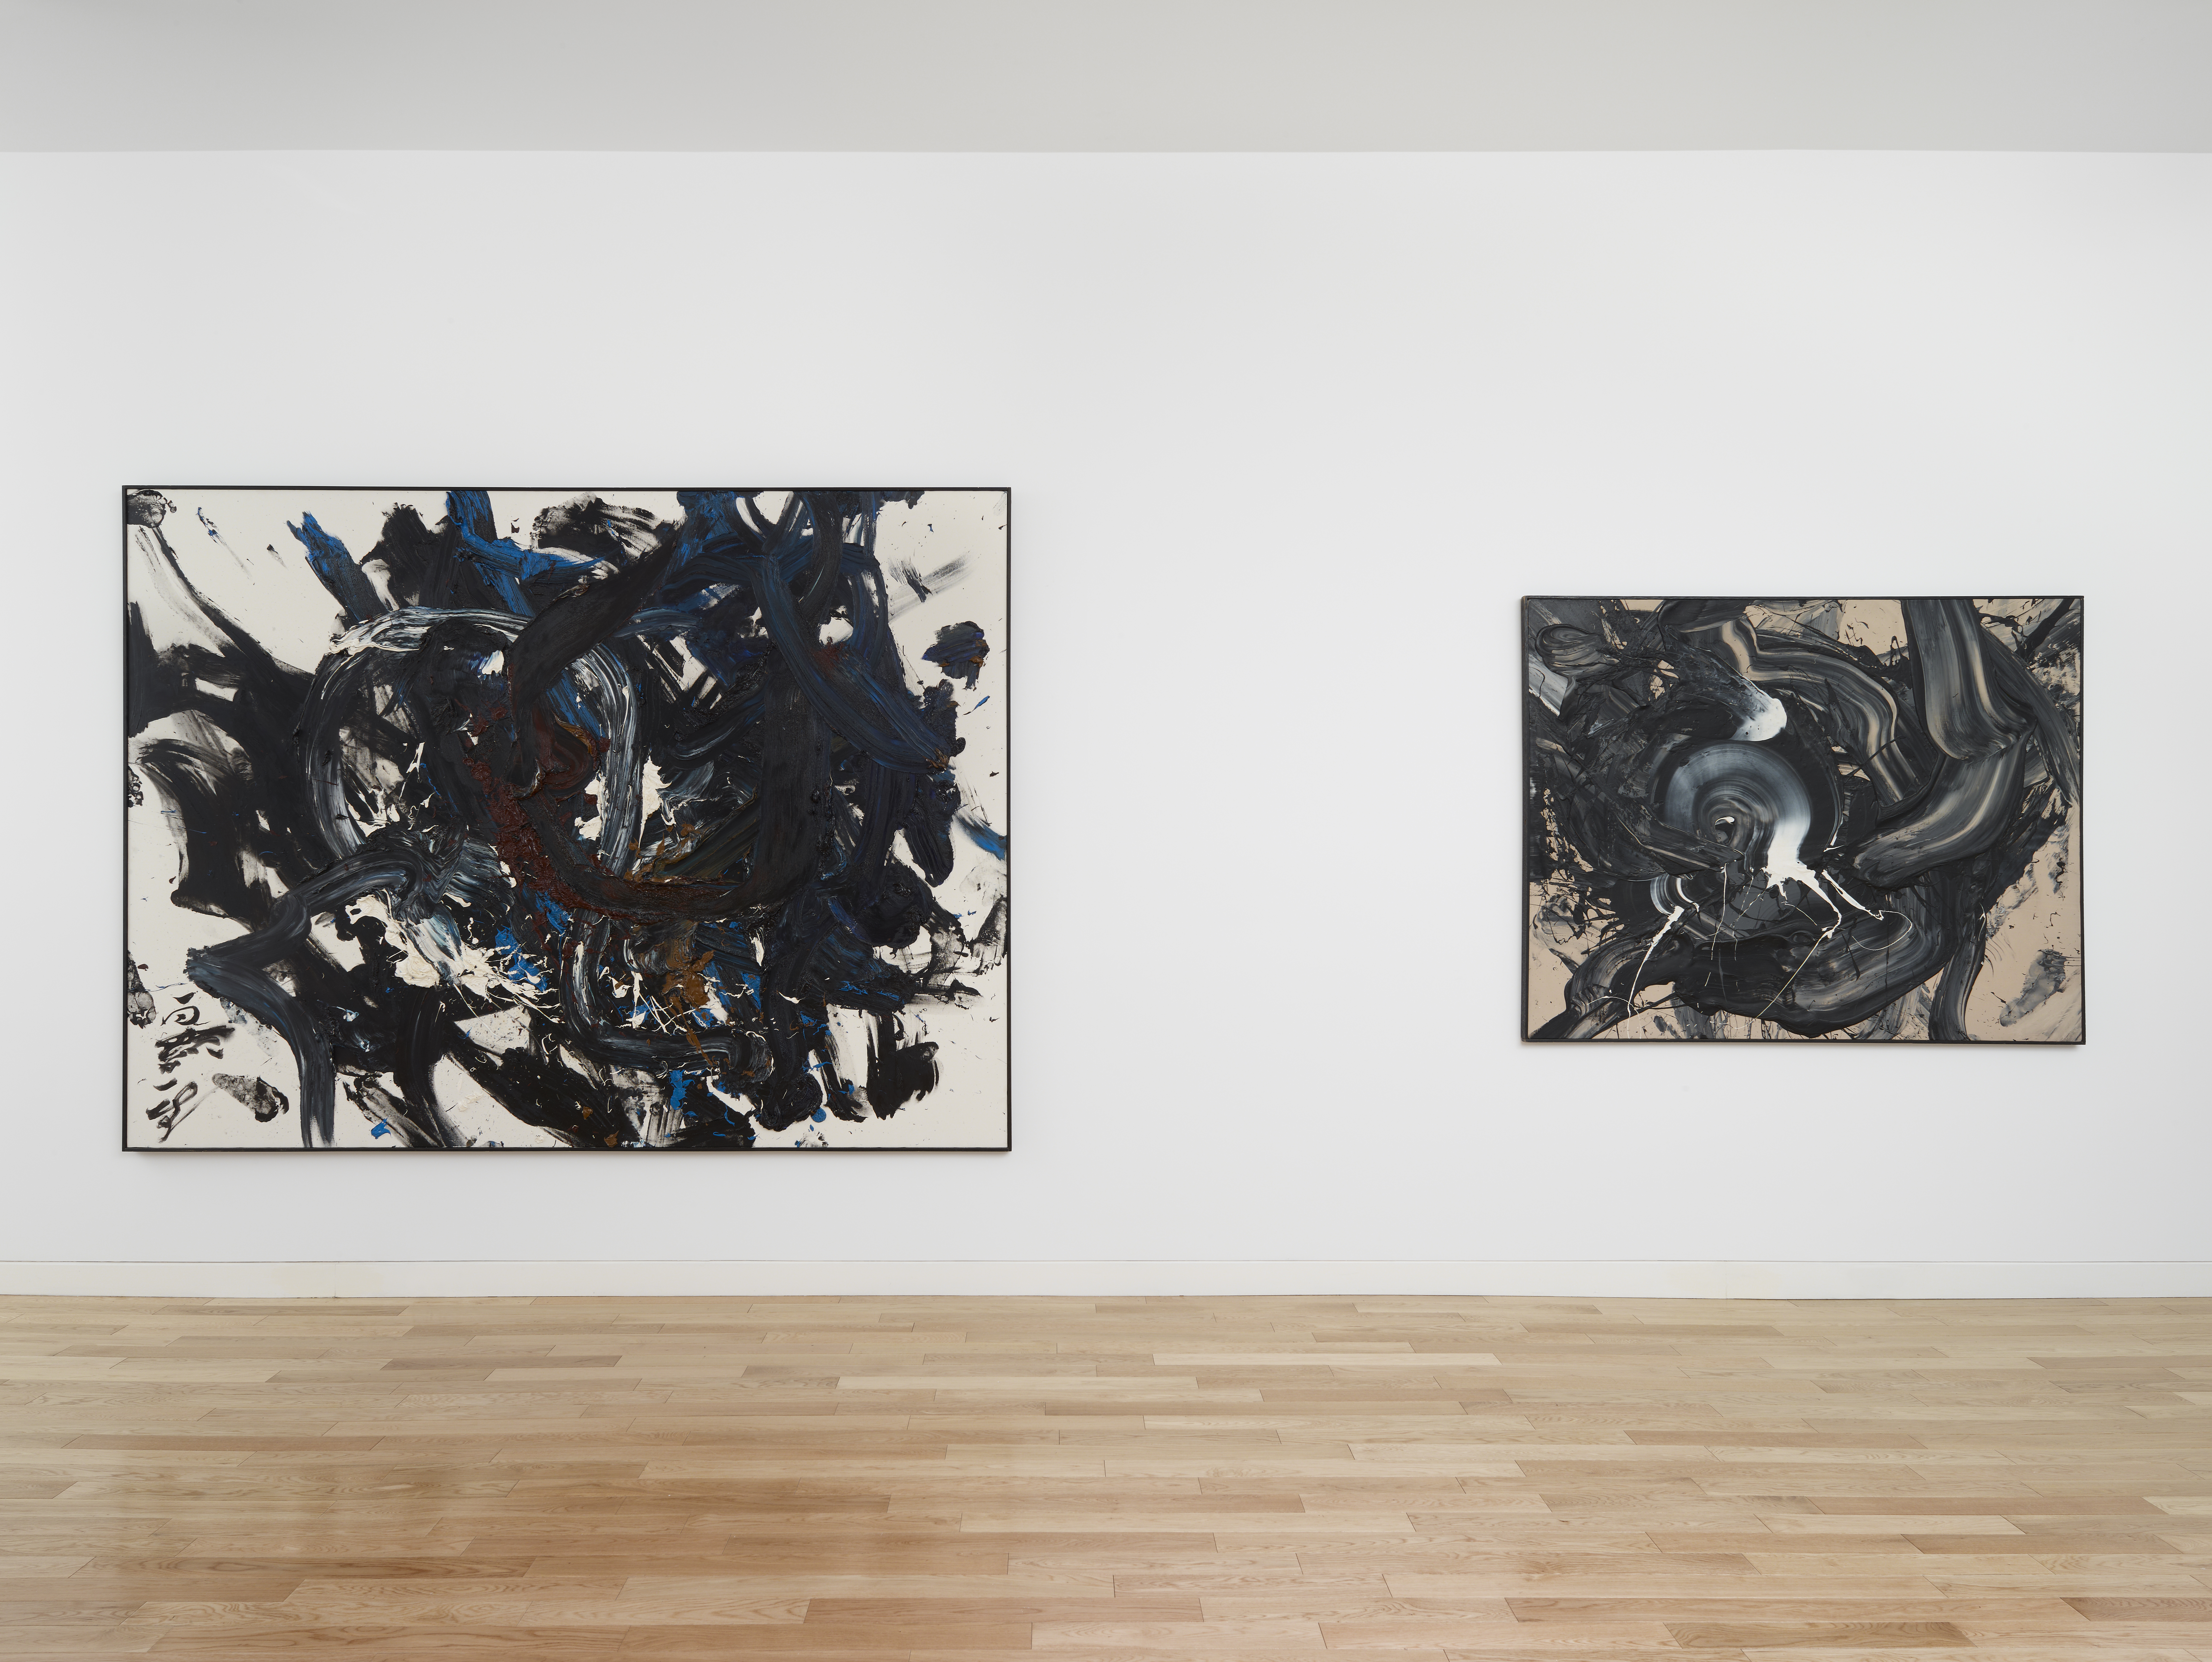 Photograph 2 from Kazuo Shiraga exhibition.